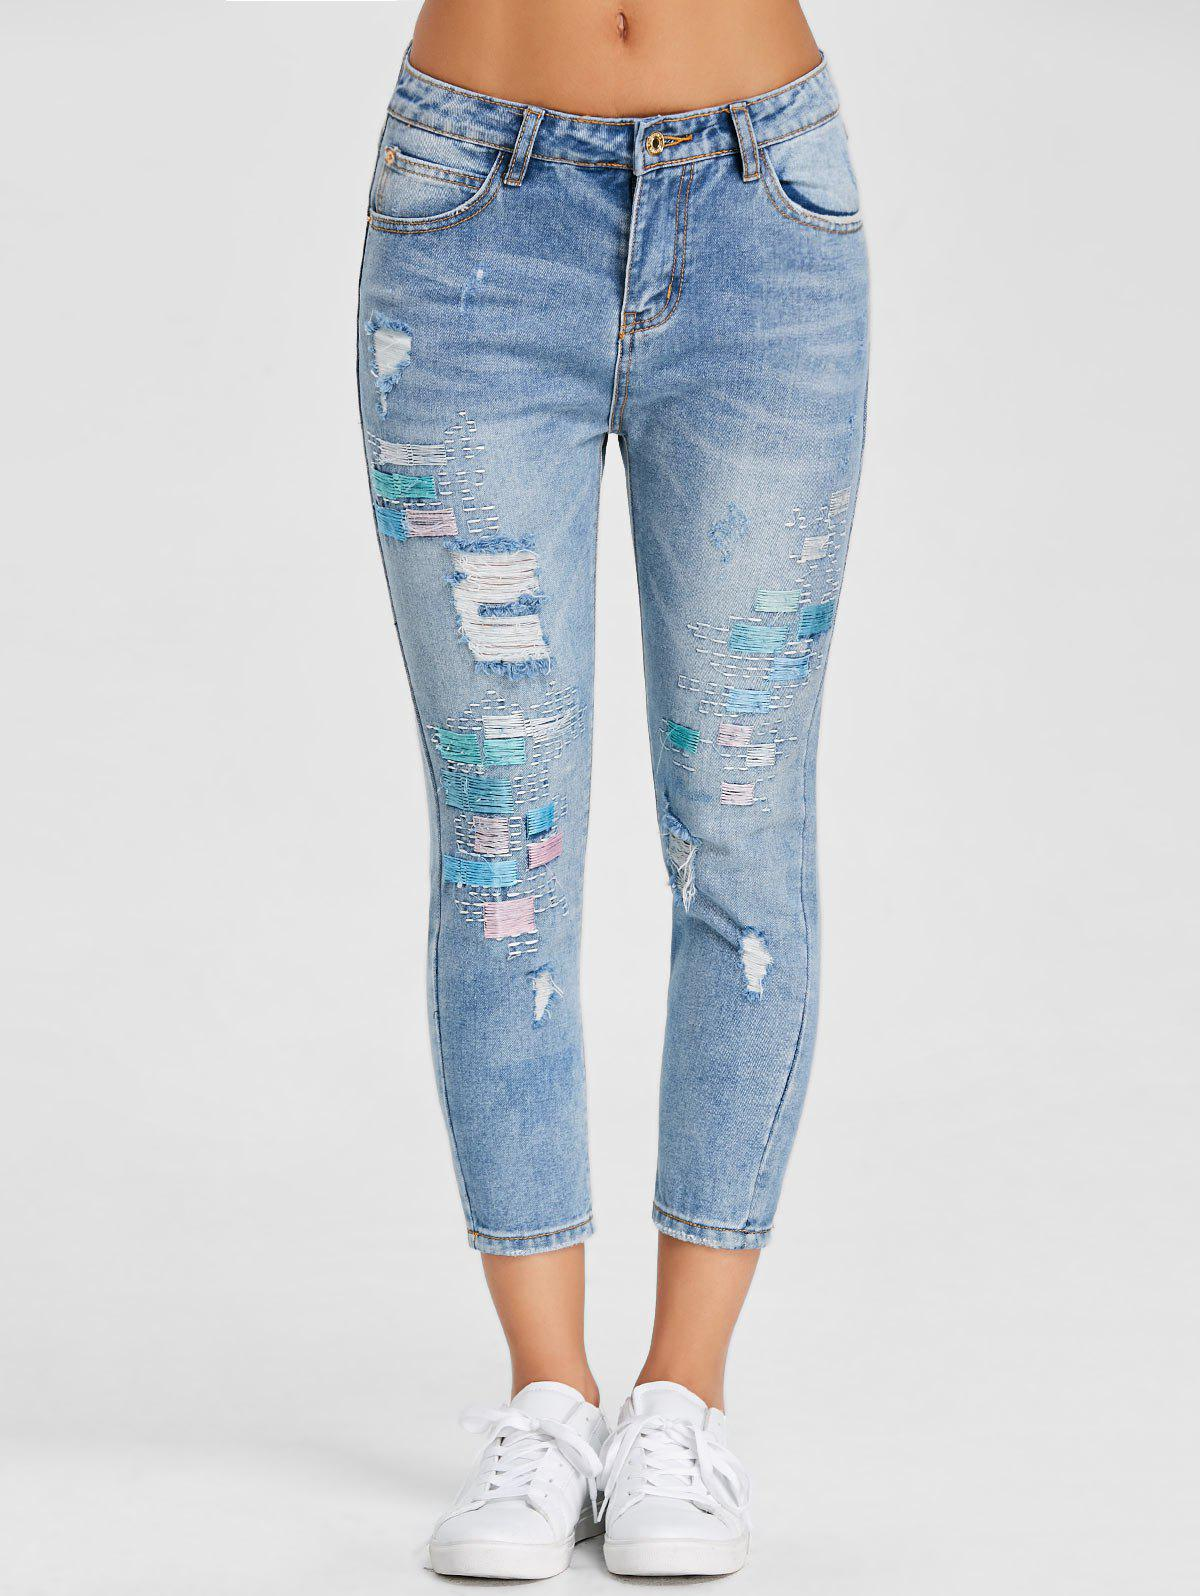 Chic Embroidery Skinny Ripped Jeans